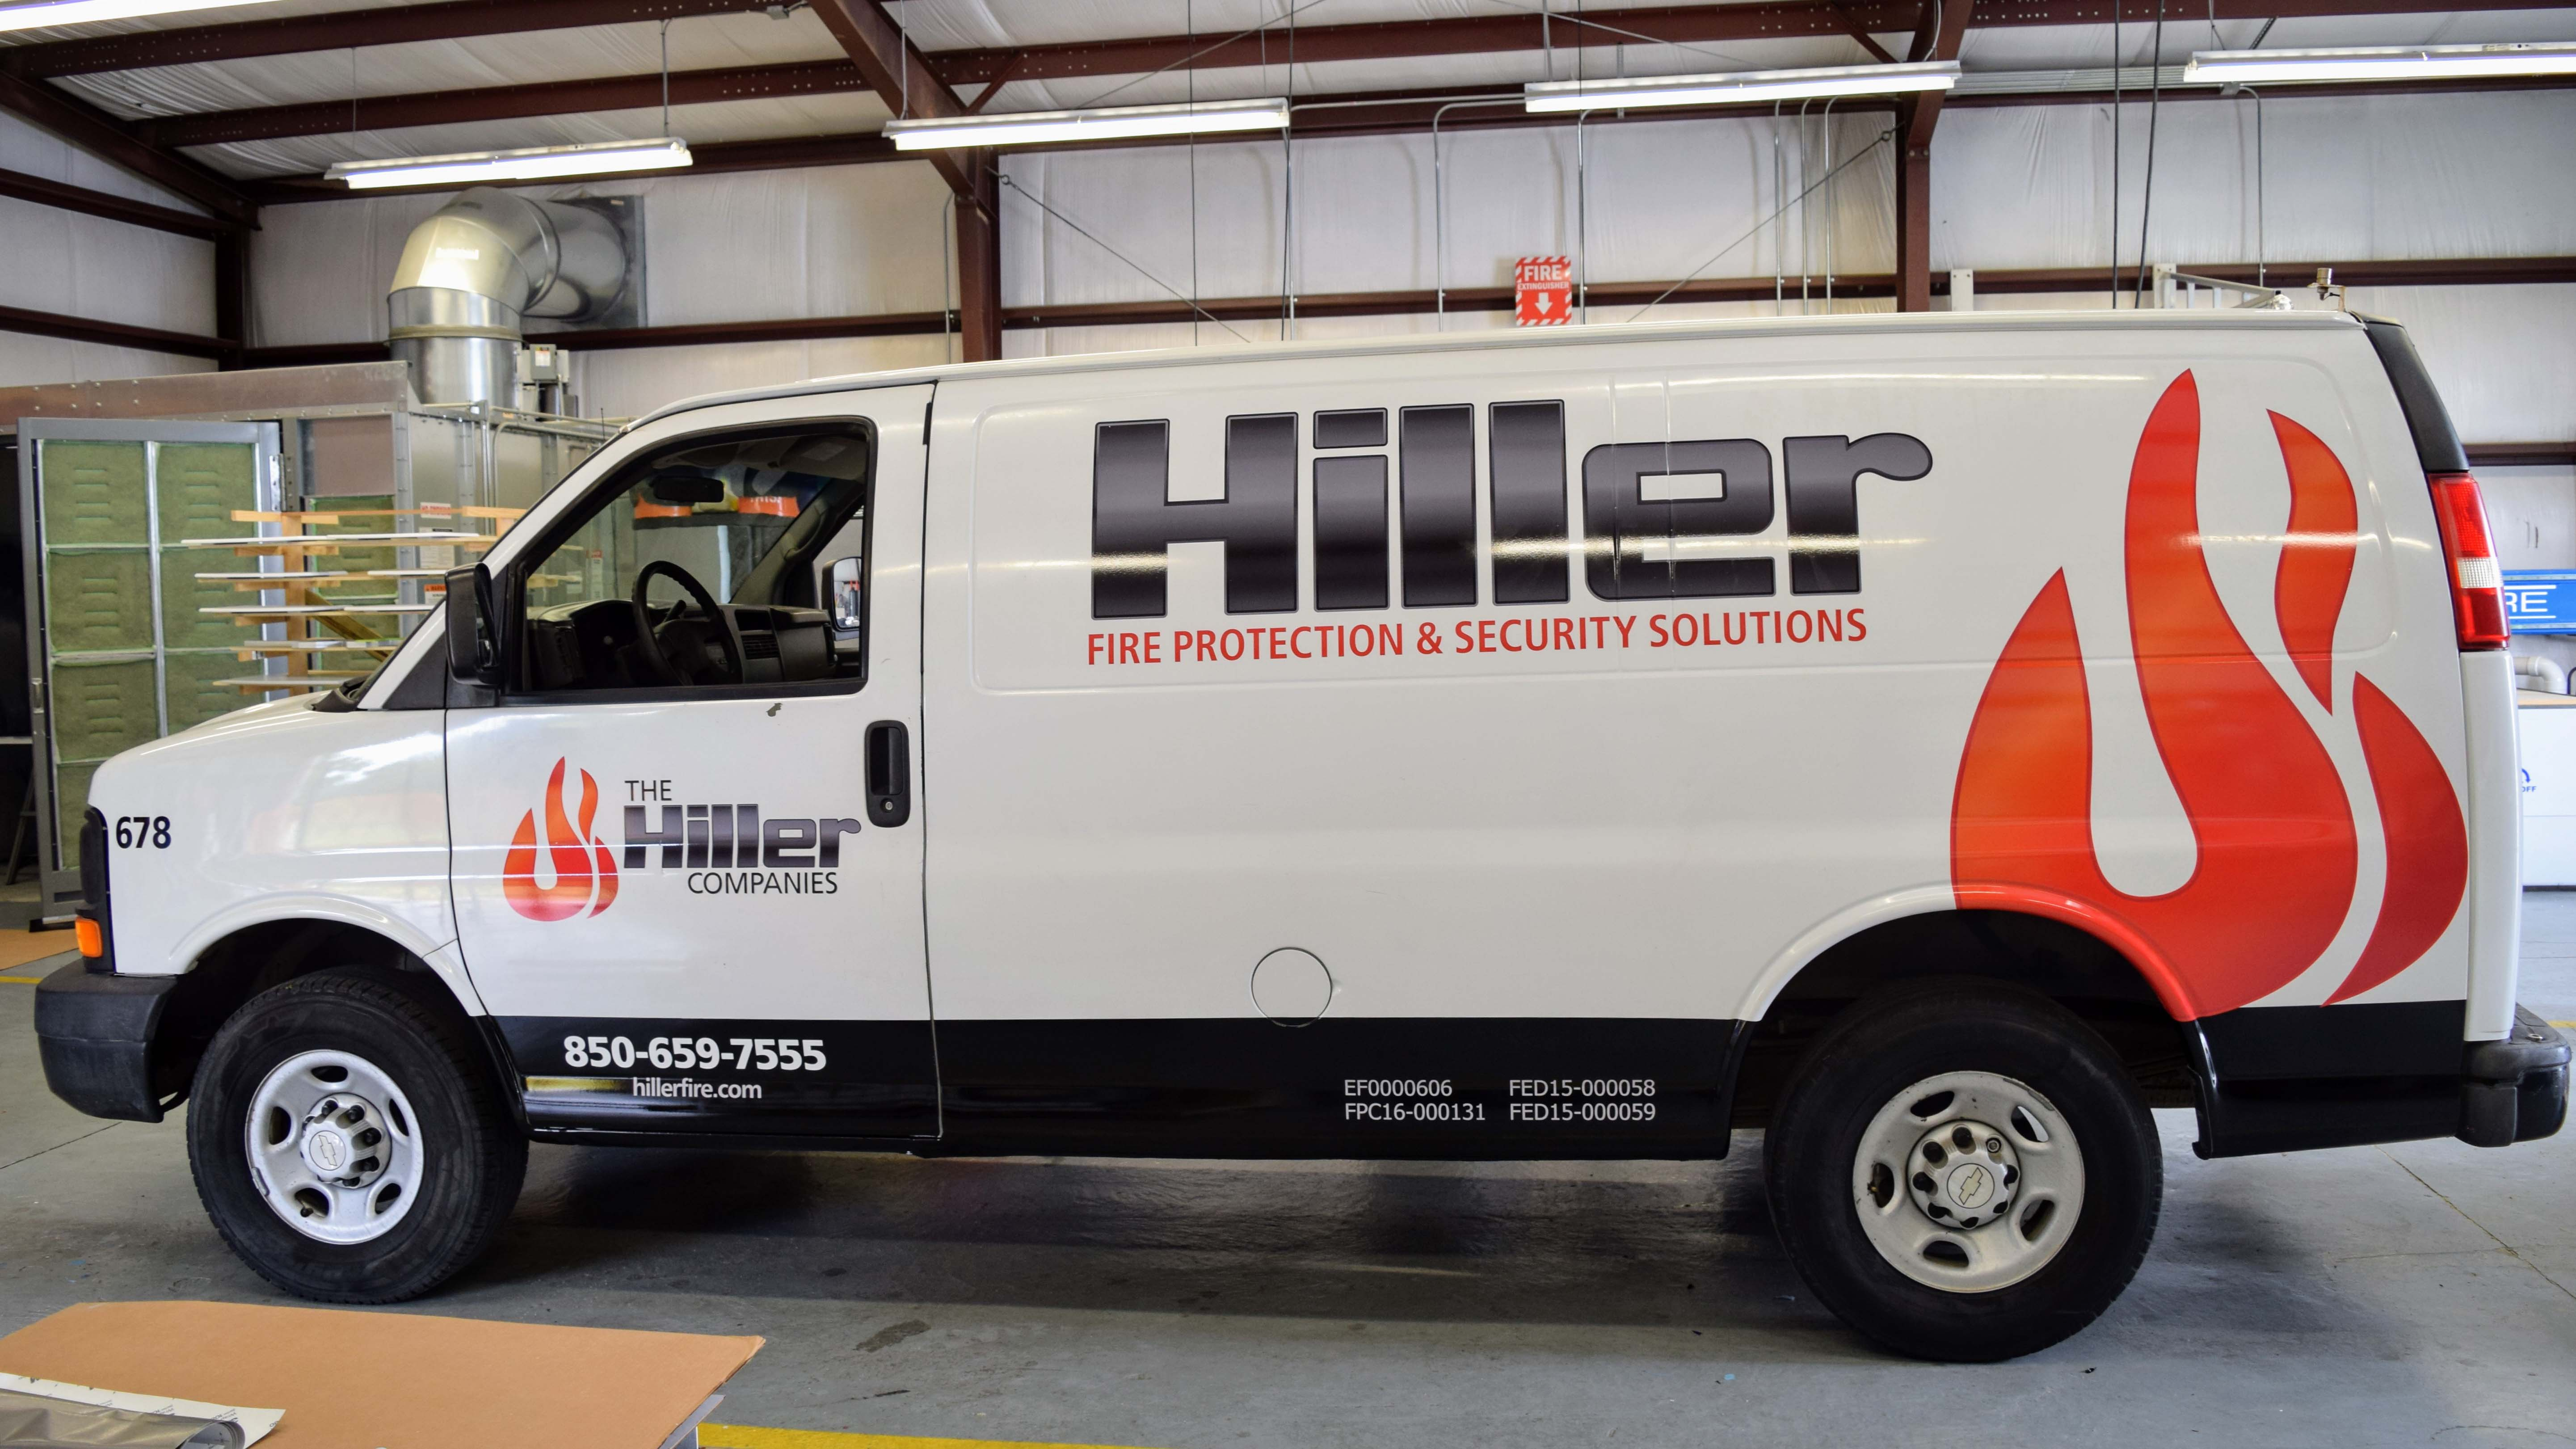 Fleet wraps and graphics on new Hiller vans - signgeek